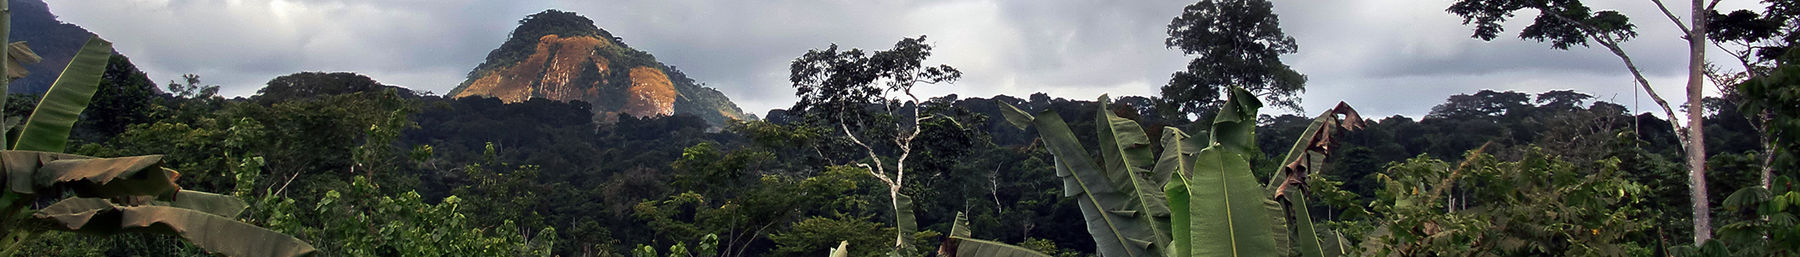 Jungle-near-Oyala,-Equatorial-Guinea-banner.jpg